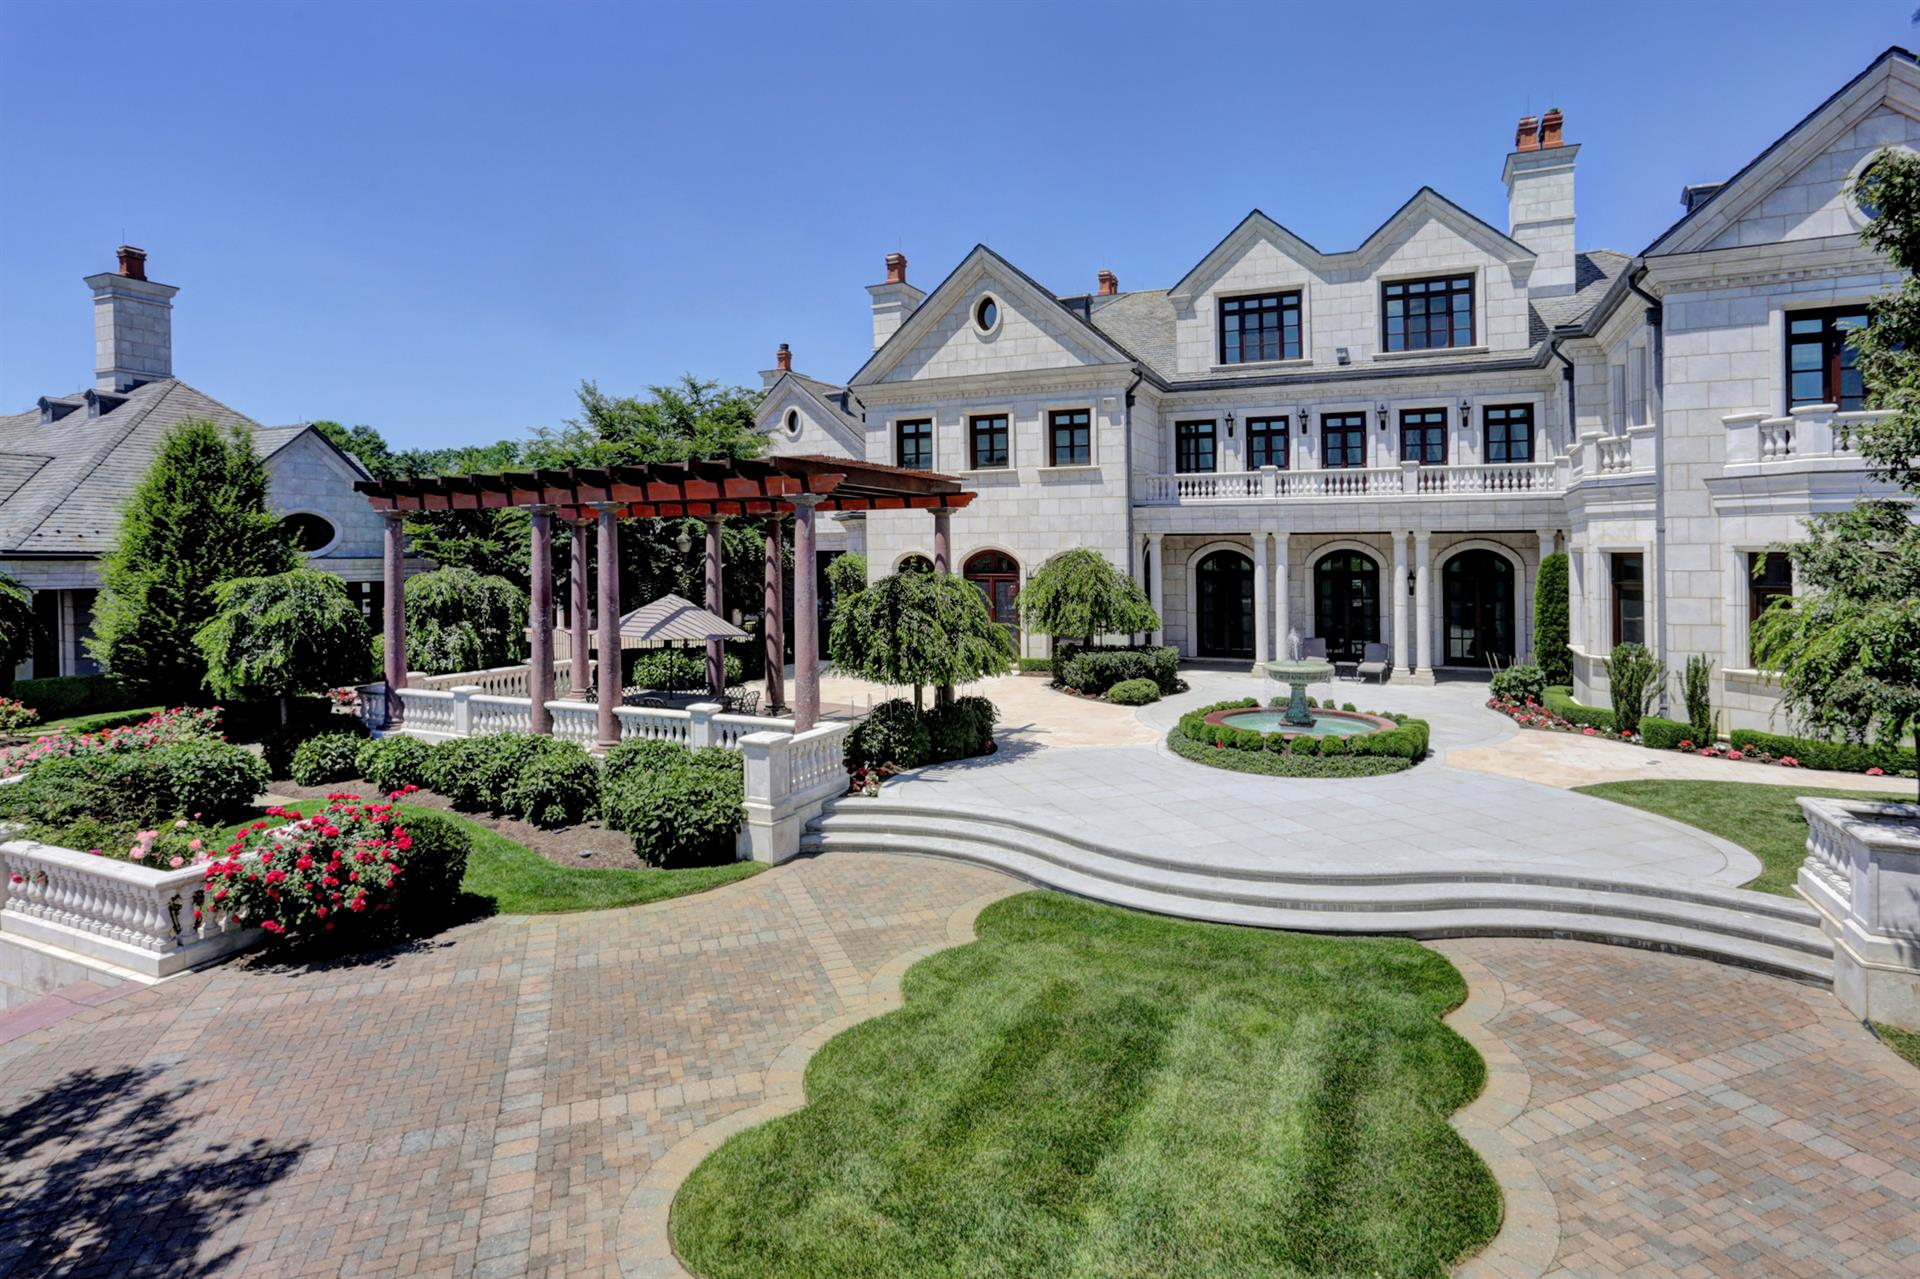 Horse Property For Sale At Equestrian Estate, Discovery Manor New York,  United States